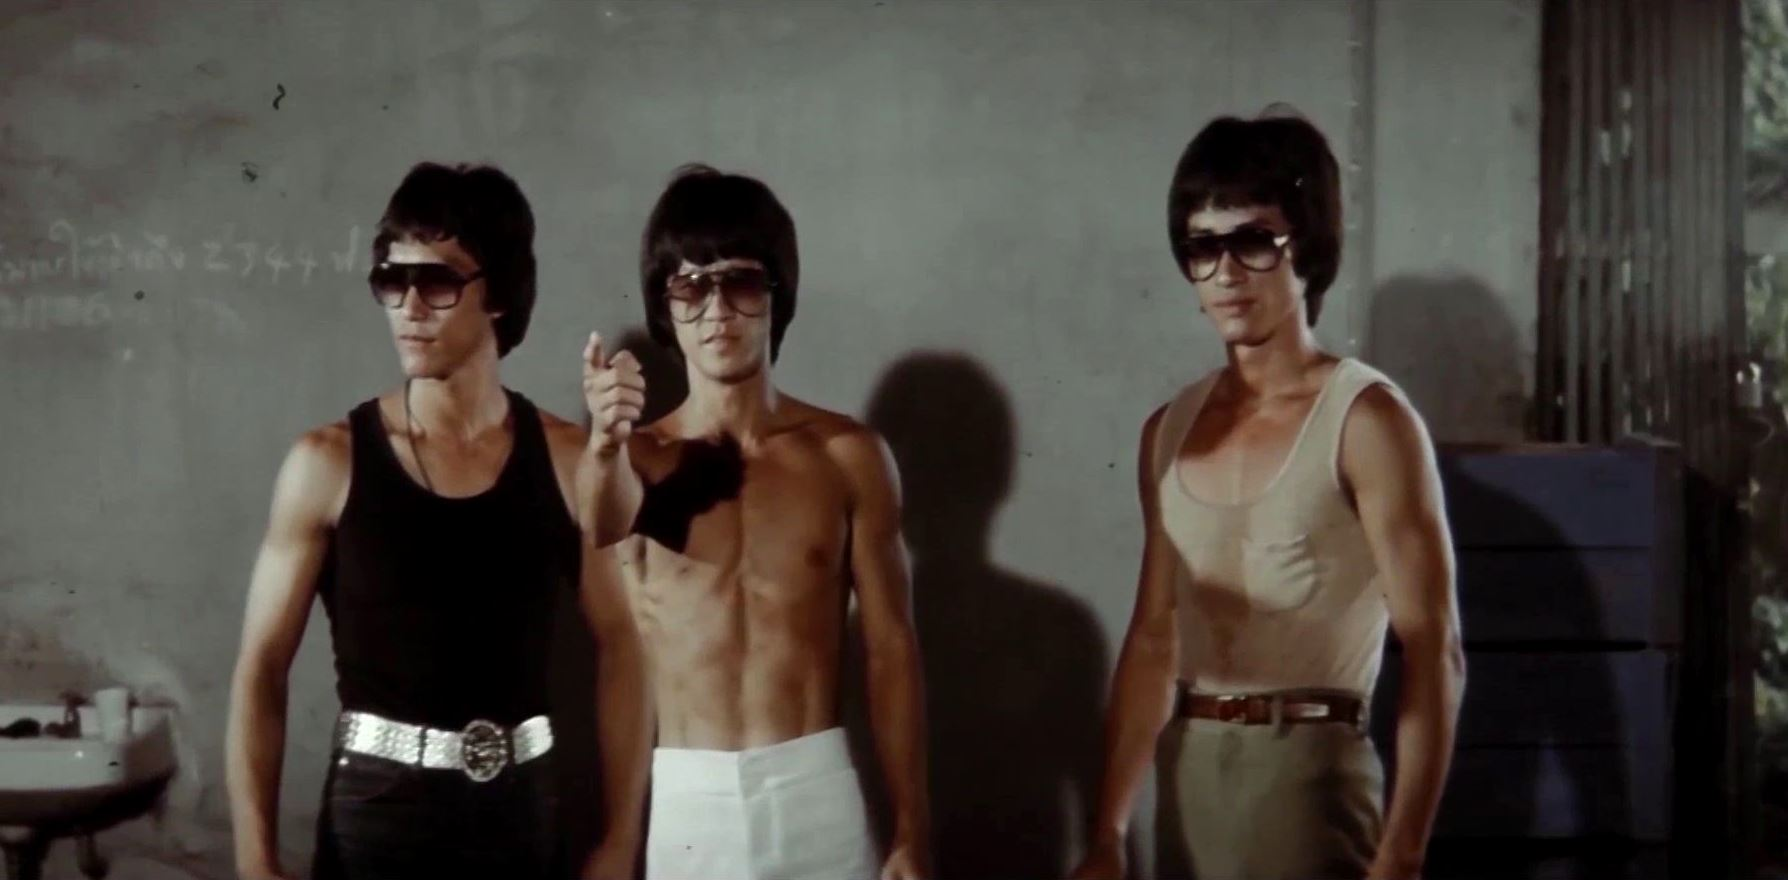 Bruce Le, Bruce Lai and Dragon Lee as The Clones of Bruce Lee (1980)